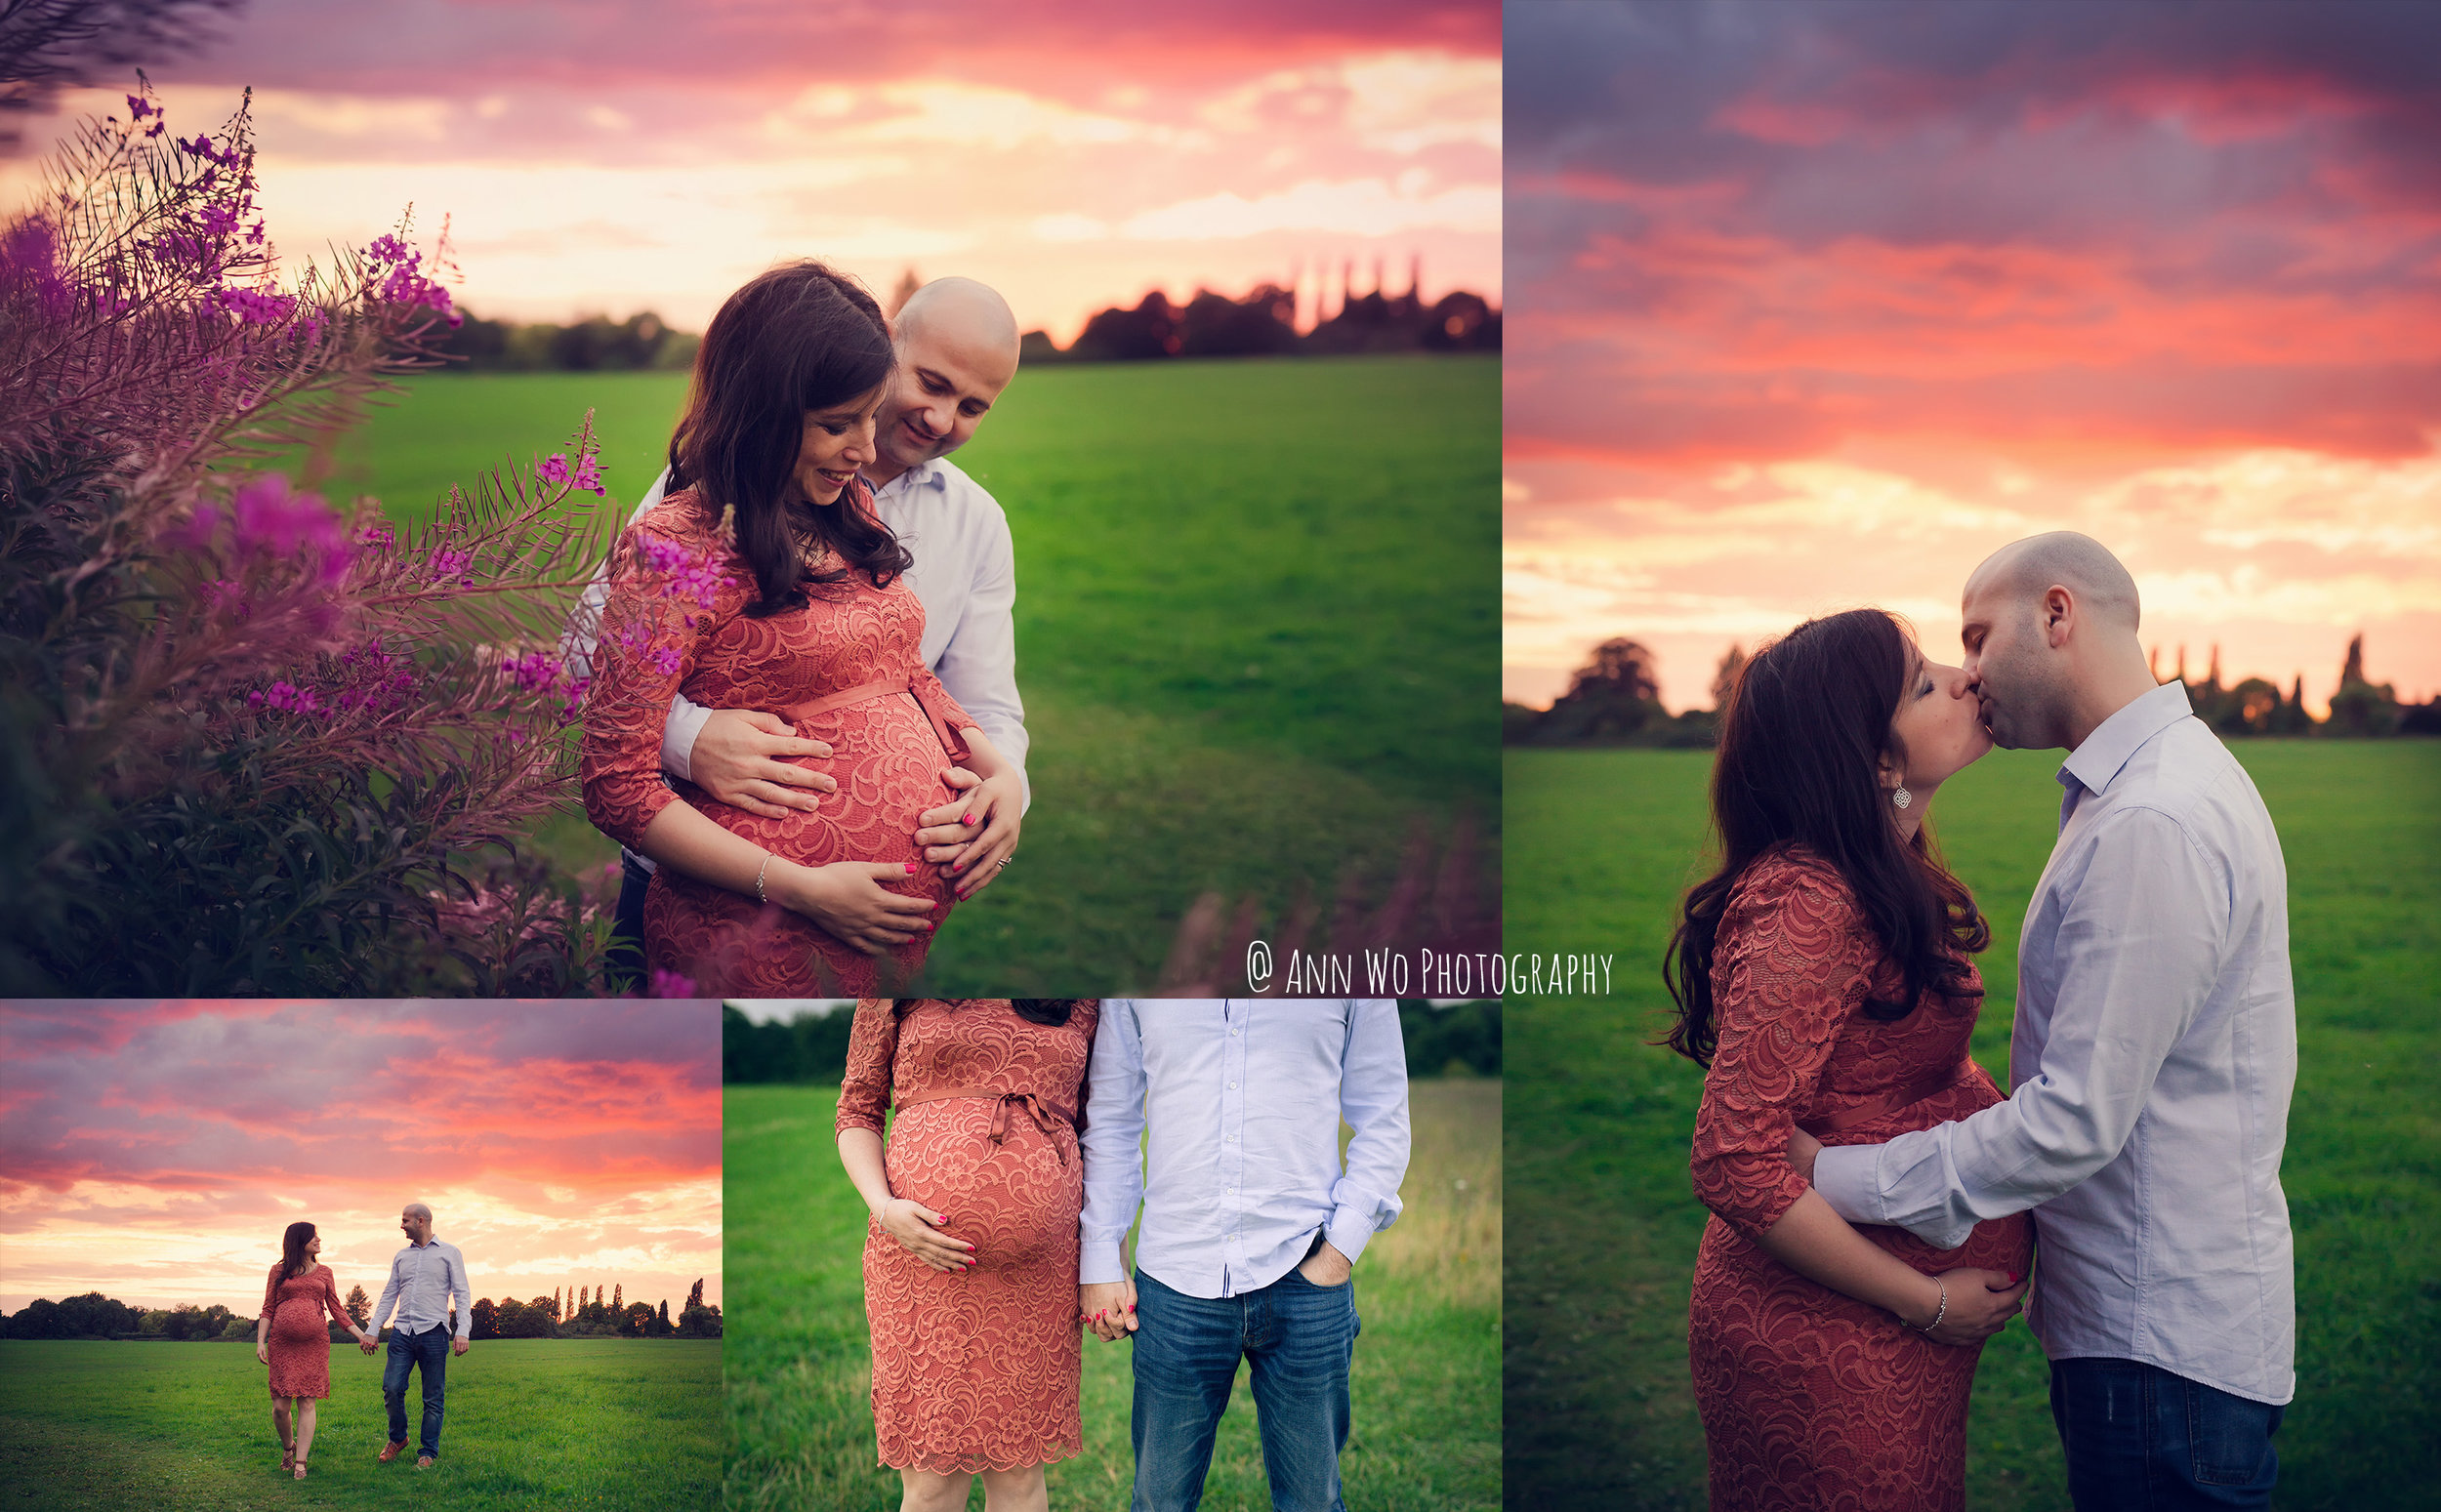 maternity-photography-ann-wo-sunset-london-beautiful-couple.jpg